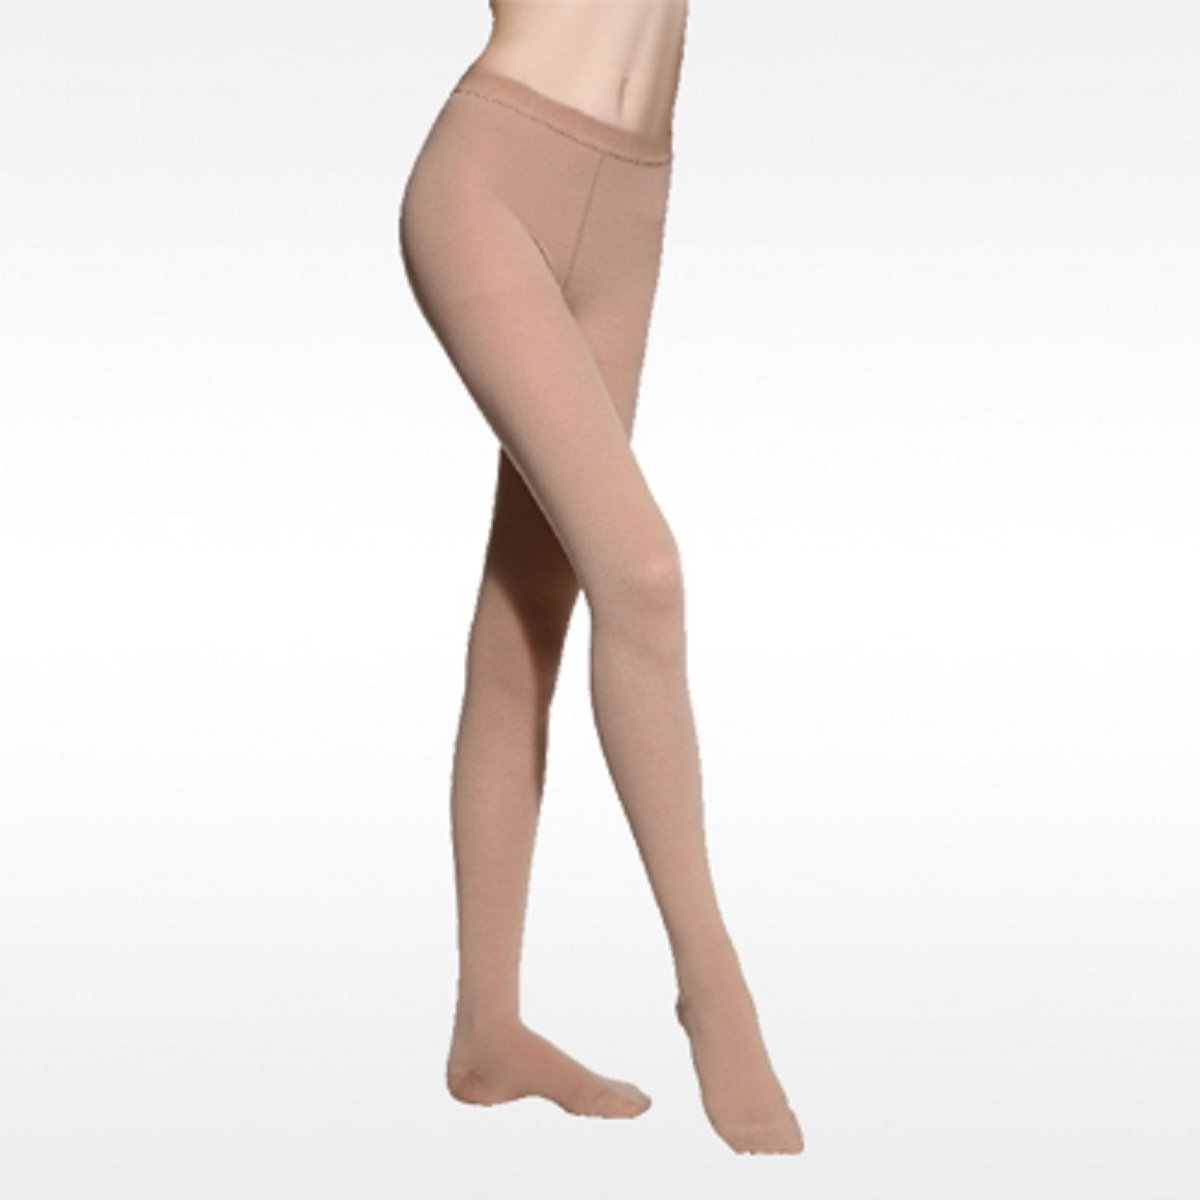 BriteLeafs Sheer Compression Pantyhose 15-20mmHg, Moderate Support, Closed Toe (Beige, Large)